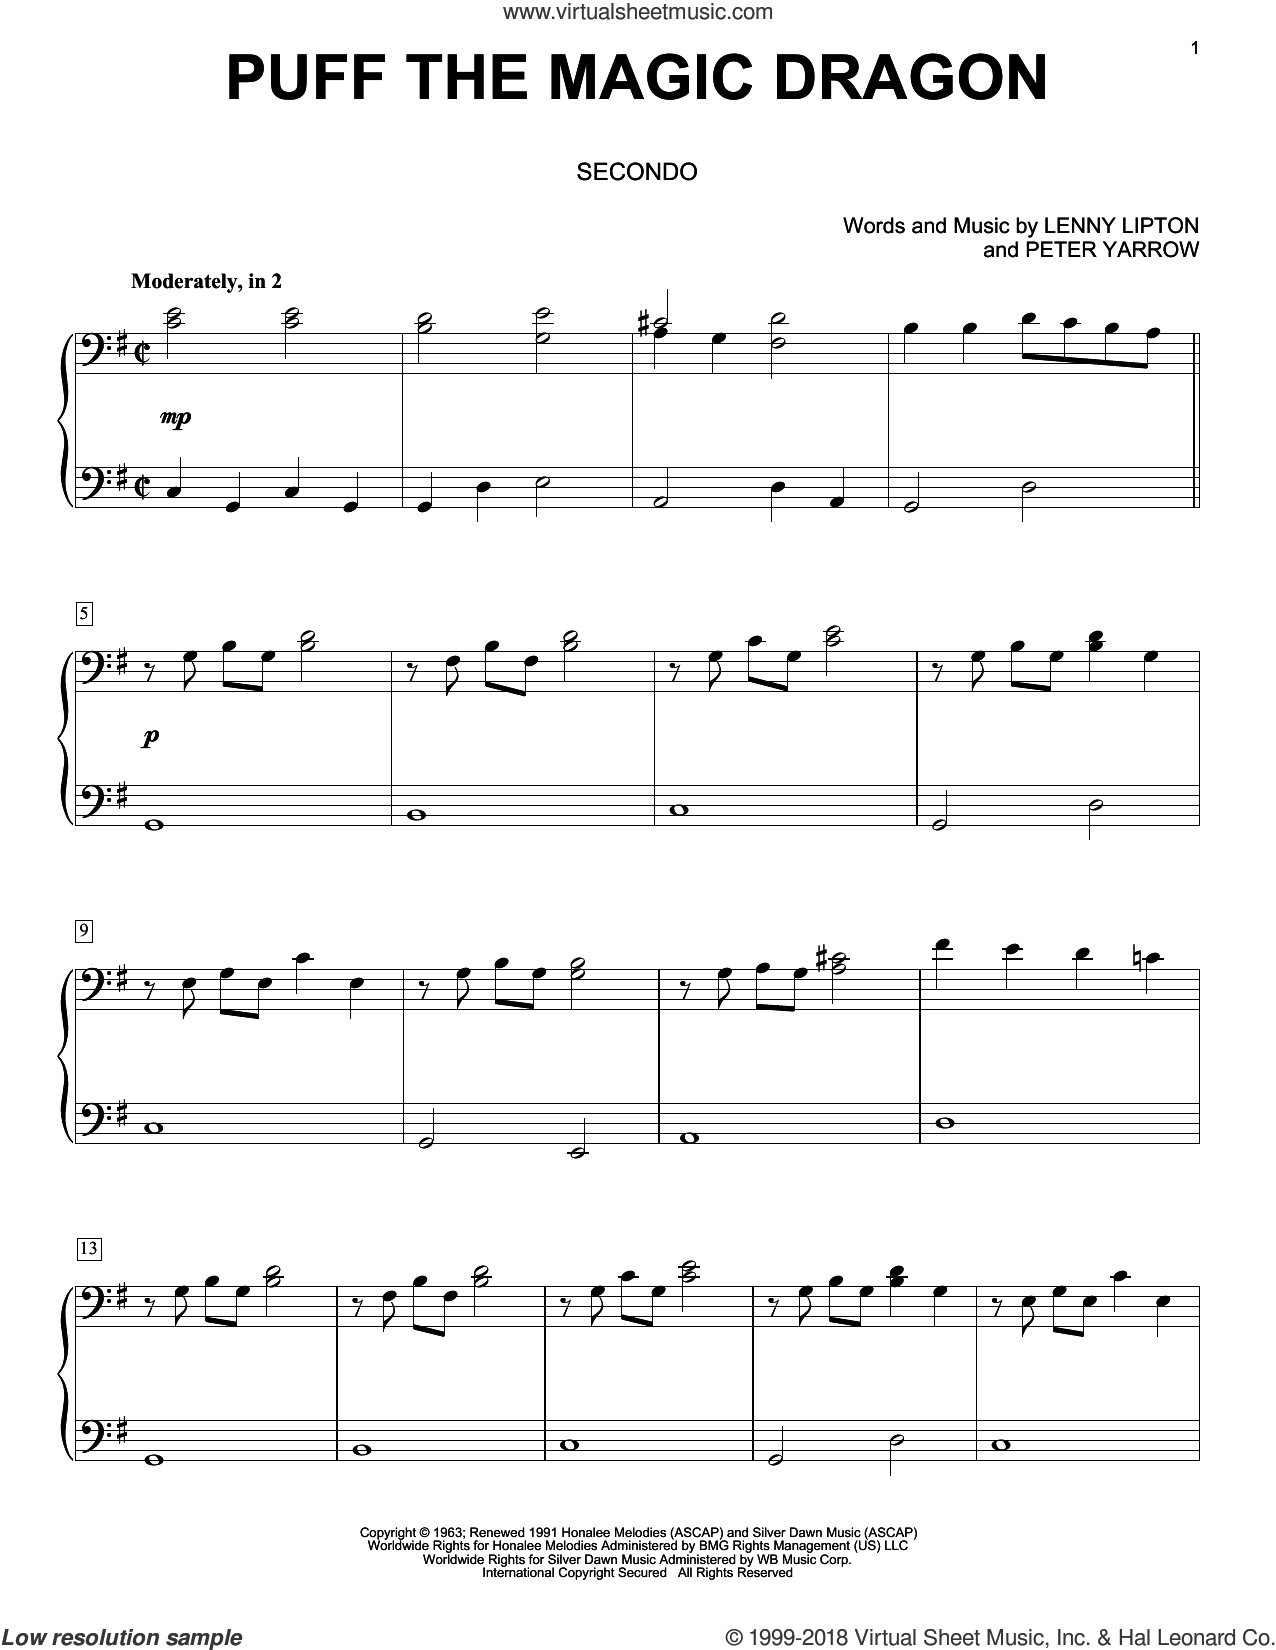 Puff The Magic Dragon sheet music for piano four hands by Peter, Paul & Mary, Lenny Lipton and Peter Yarrow, intermediate skill level